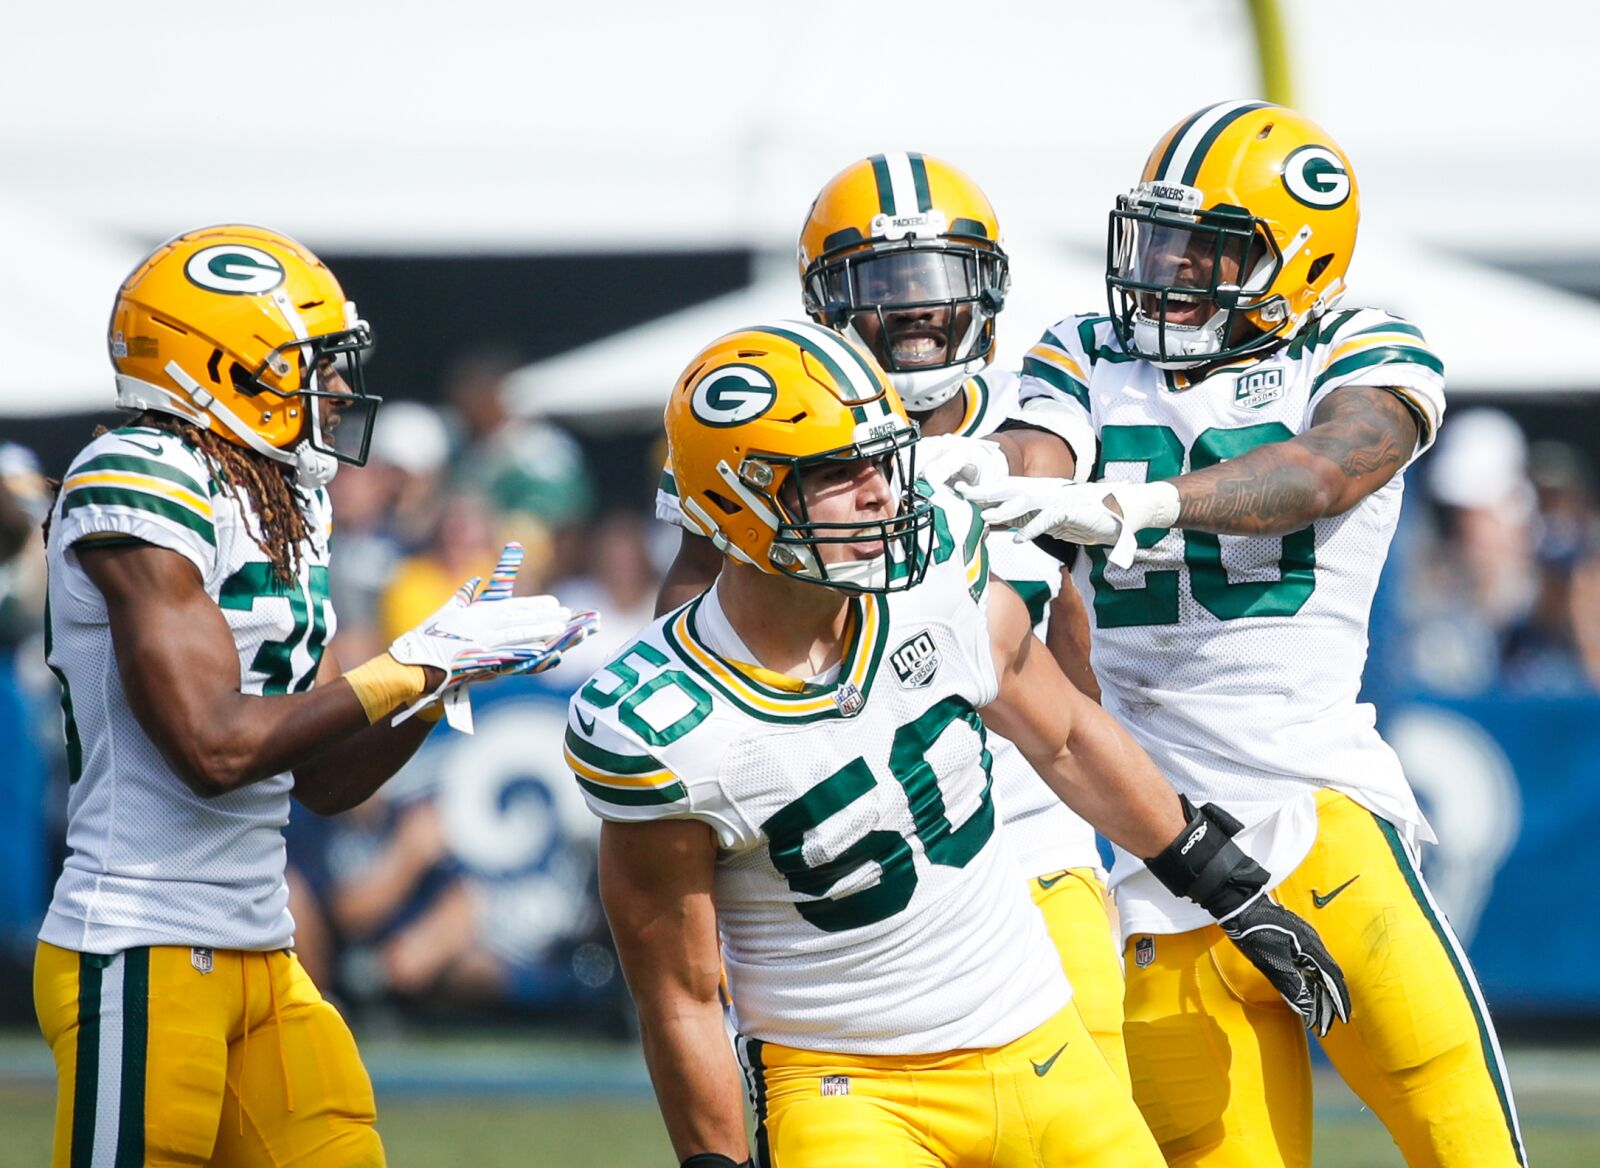 Packers: Blake Martinez is PFF's highest-graded linebacker in NFC North